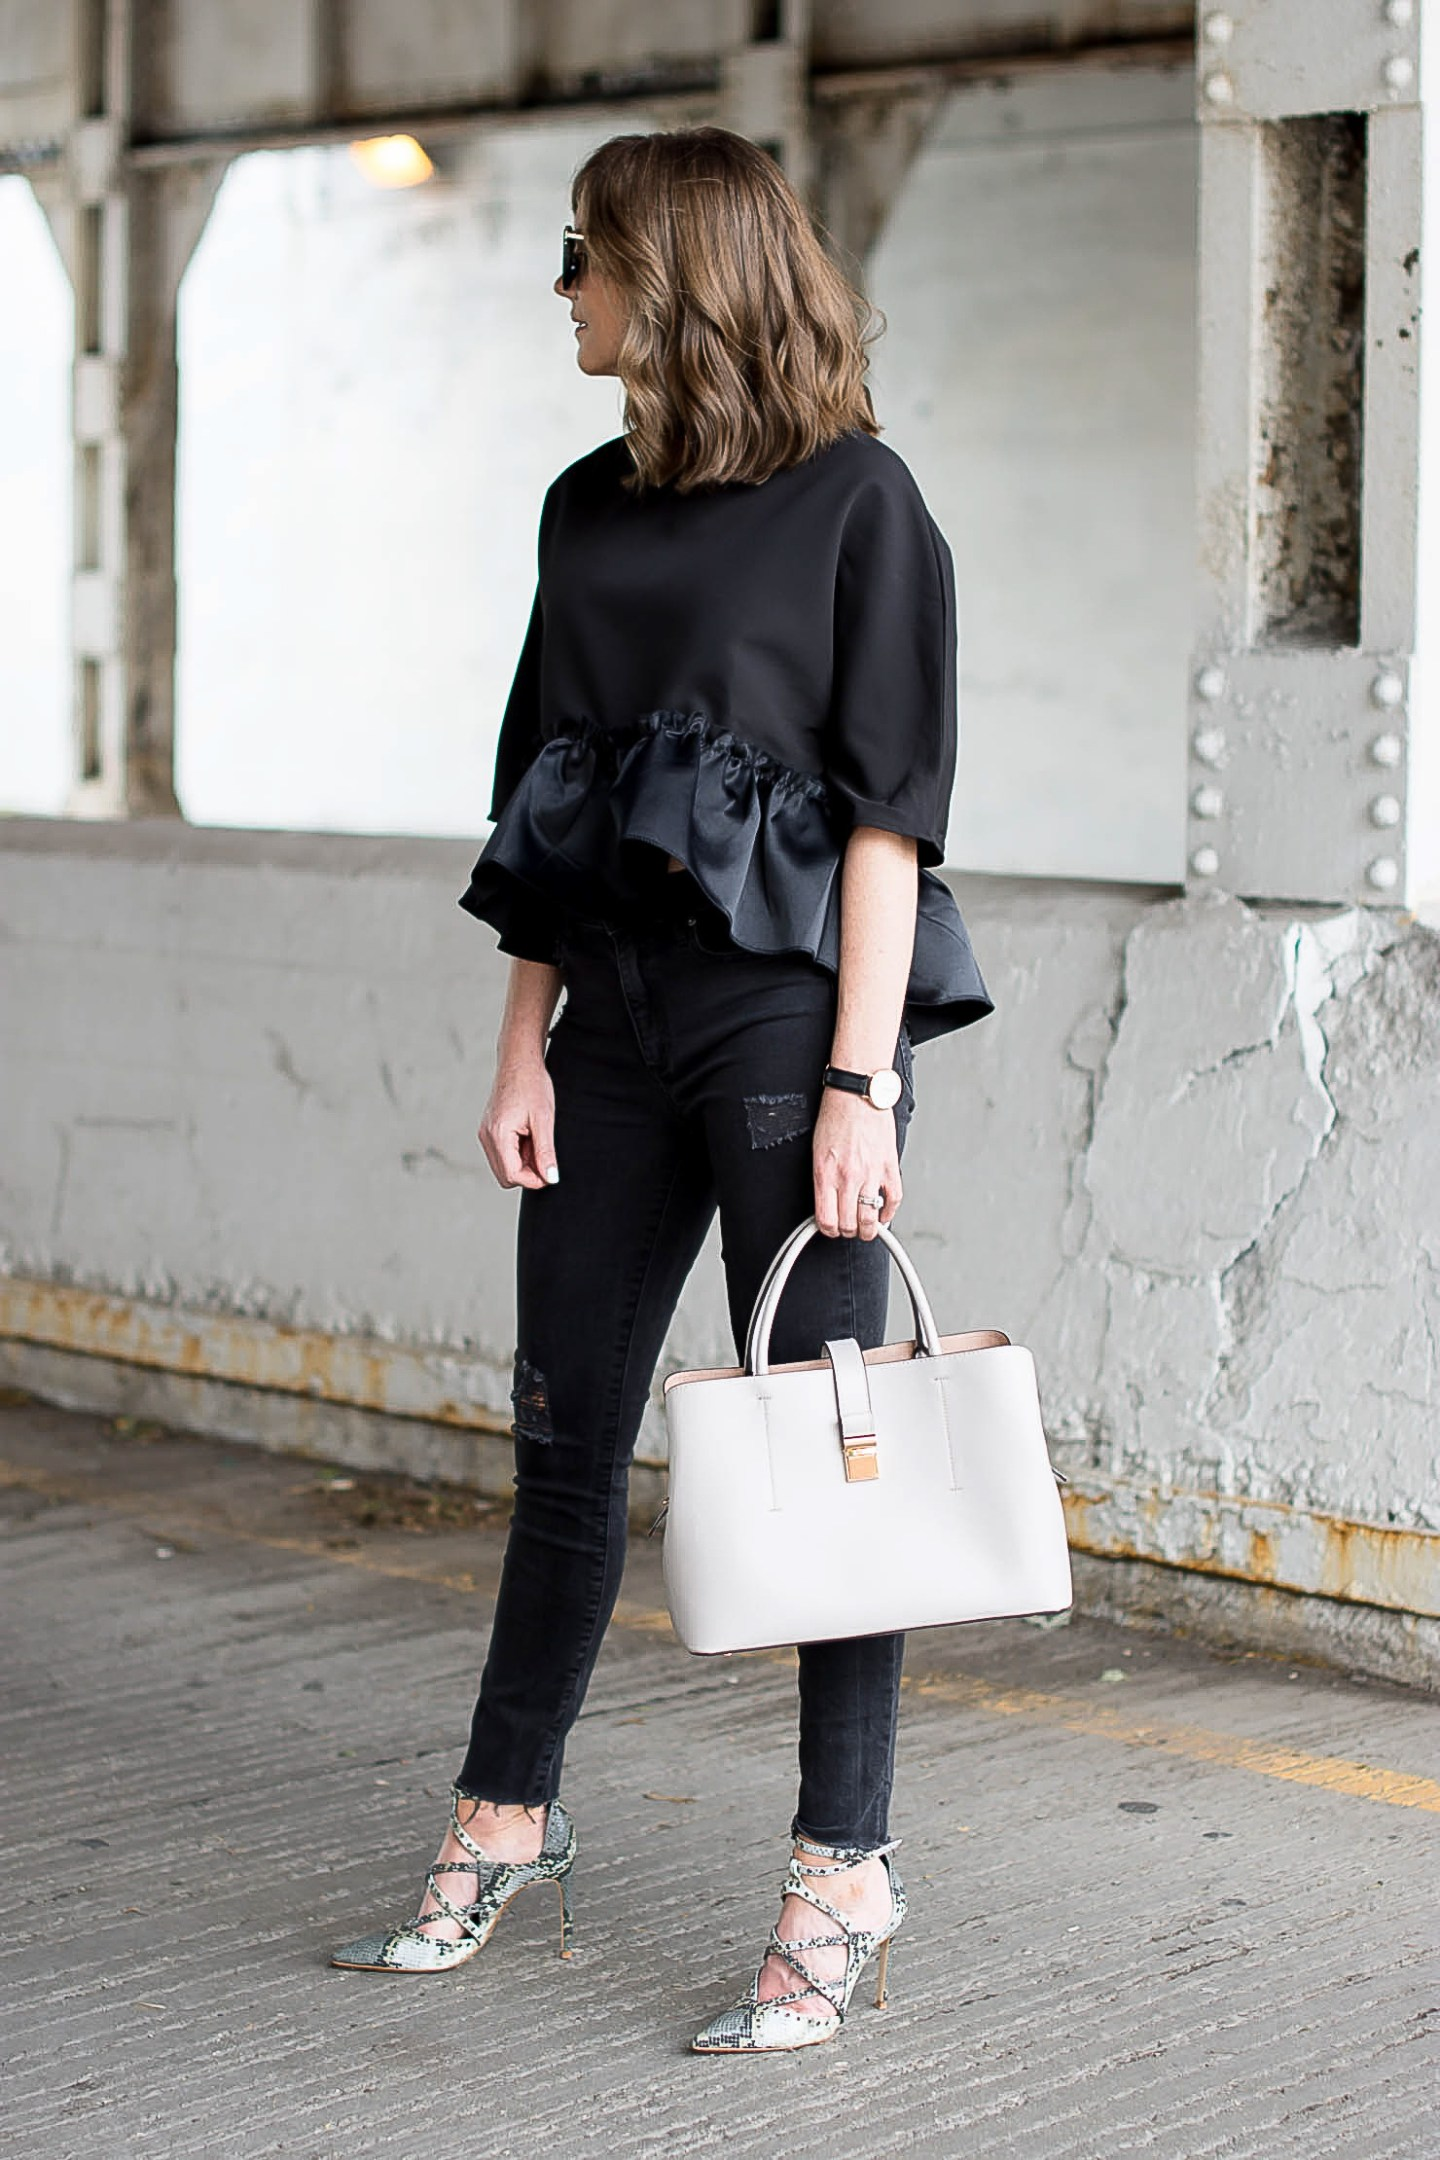 nordstrom black structured ruffle hem peplum top, monochromatic black fall outfit, the trick to finding affordable pieces that look expensive